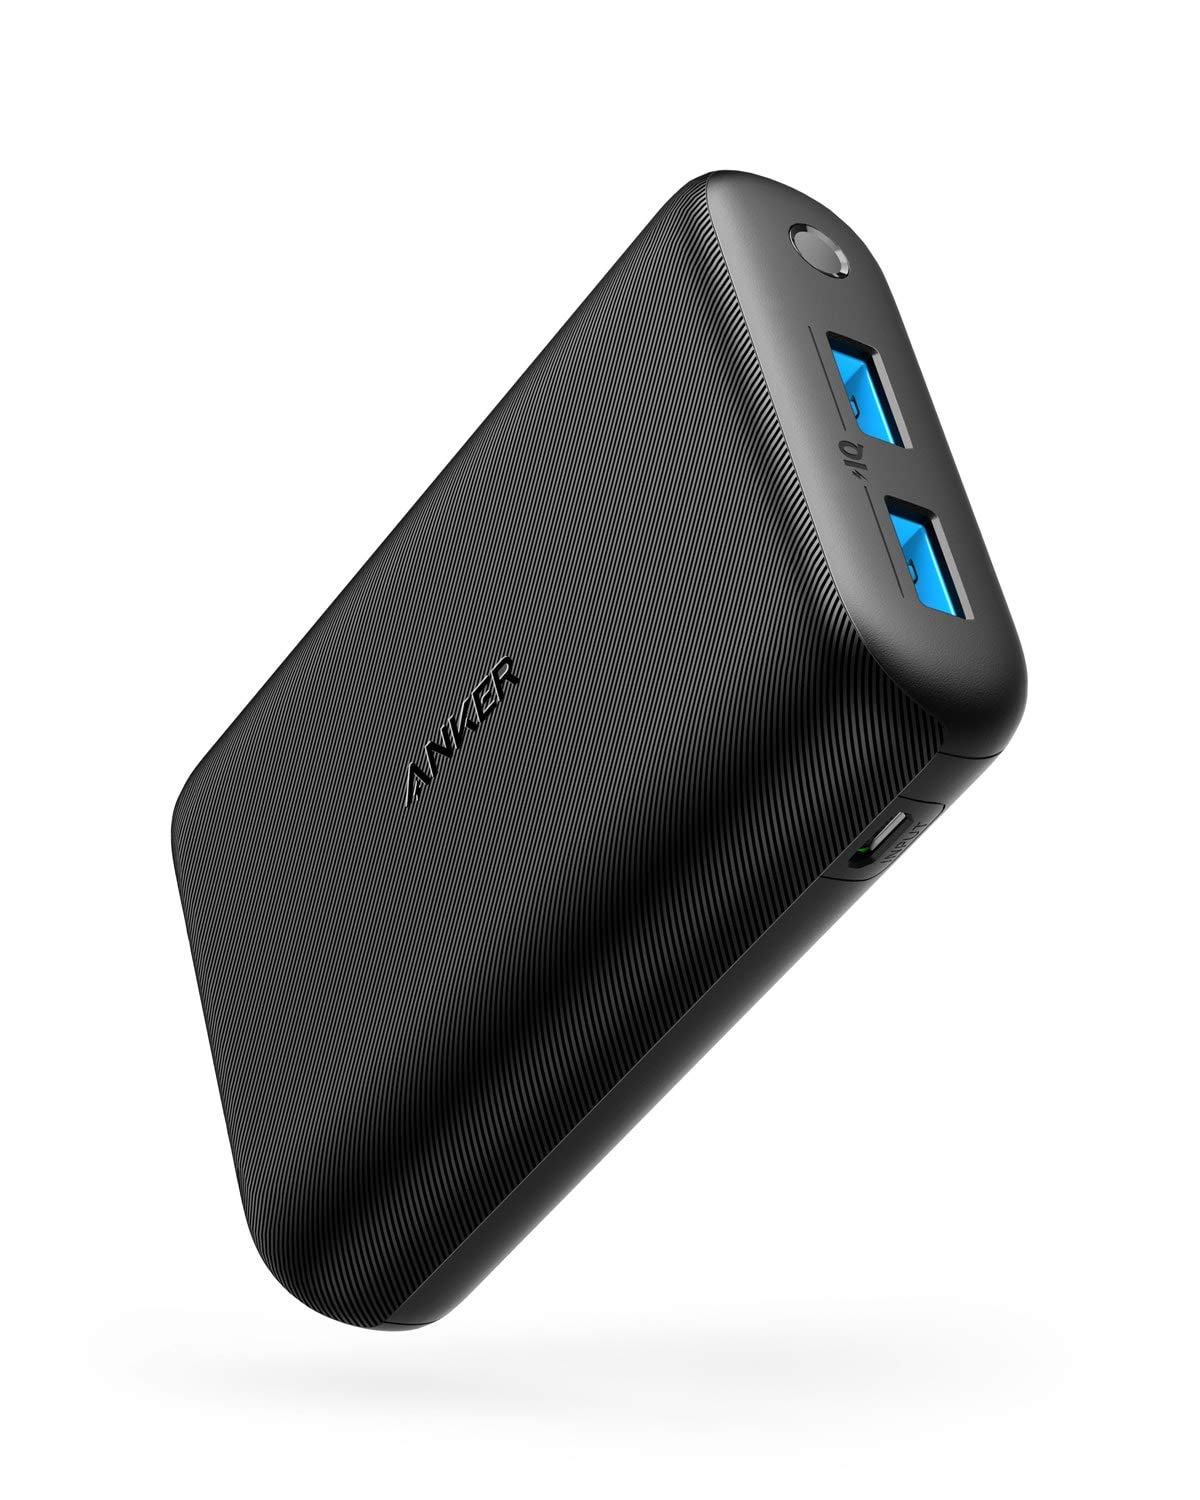 Anker PowerCore 15000 Redux, Compact 15000mAh 2-Port Ultra-Portable Phone Charger Power Bank with PowerIQ and VoltageBoost Technology for iPhone, iPad, Samsung Galaxy by Anker